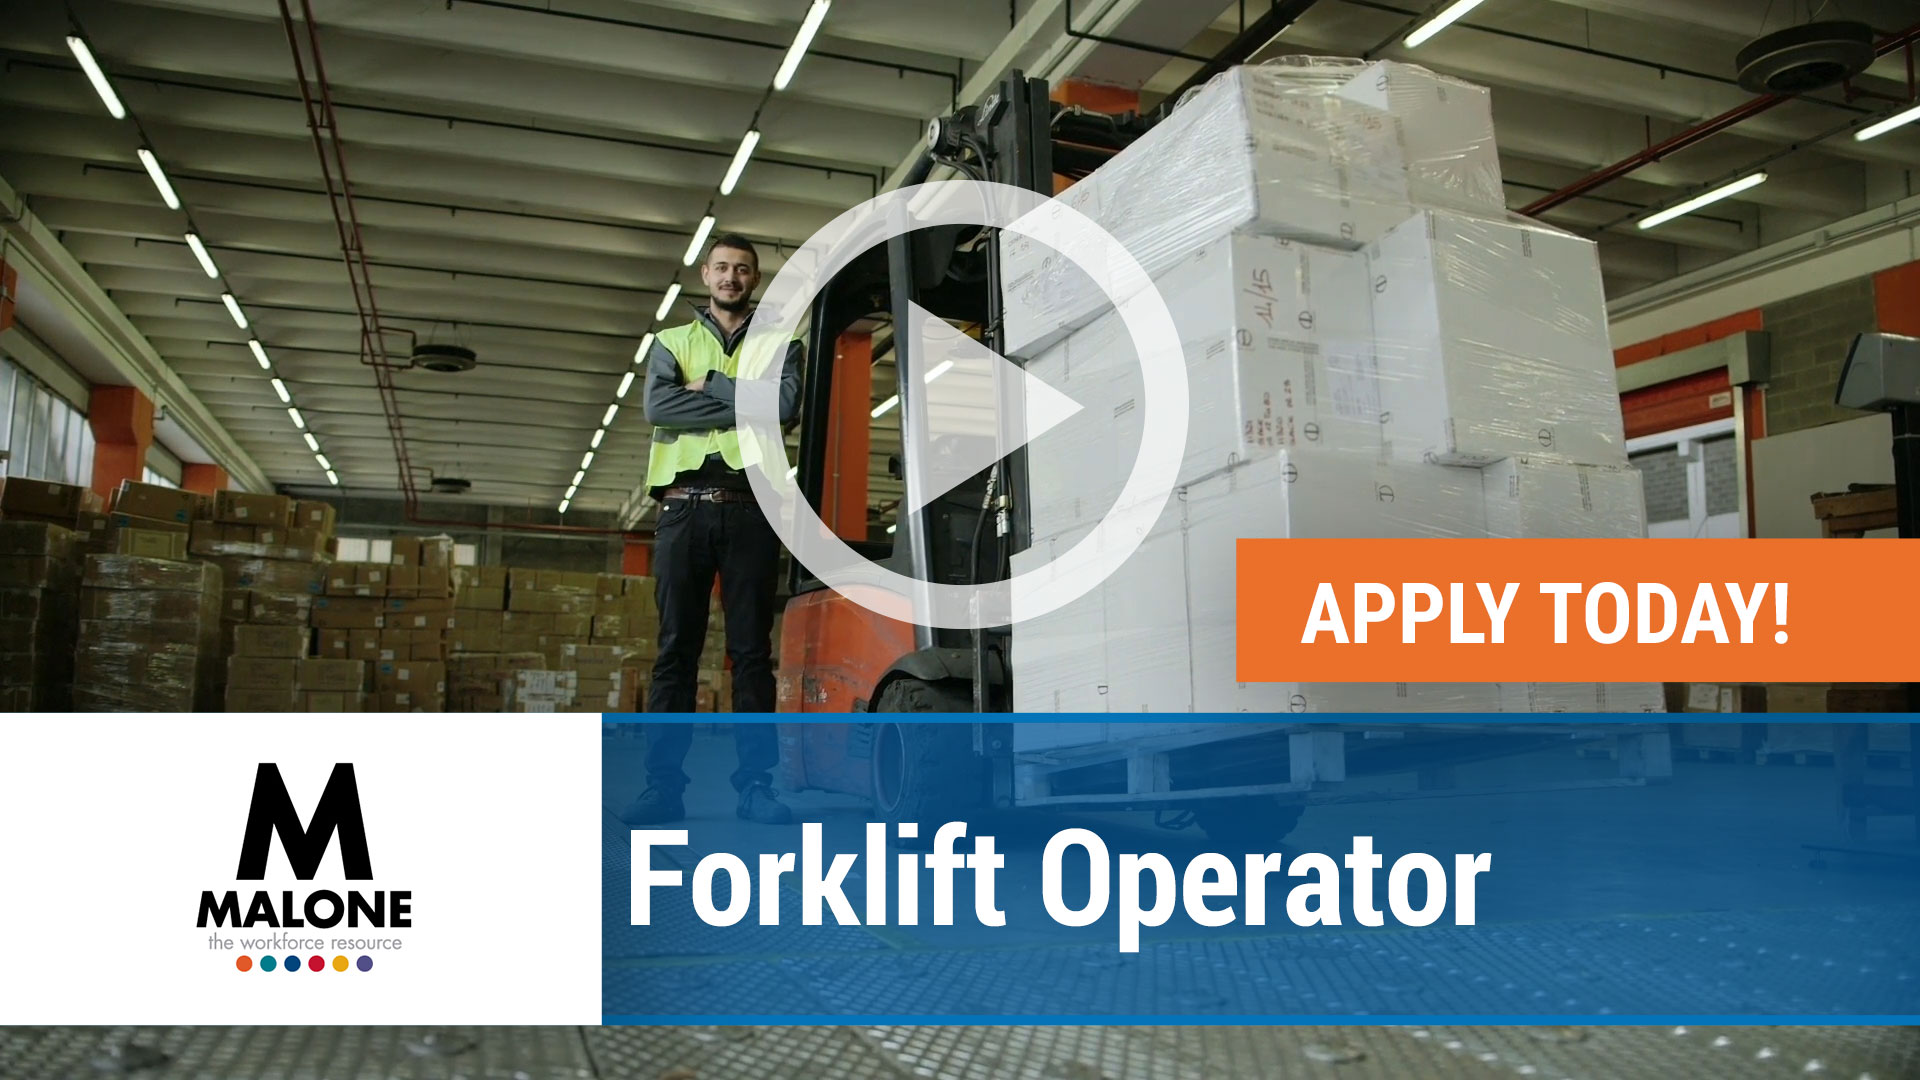 Watch our careers video for available job opening Forklift Operator in Portland, Tennessee